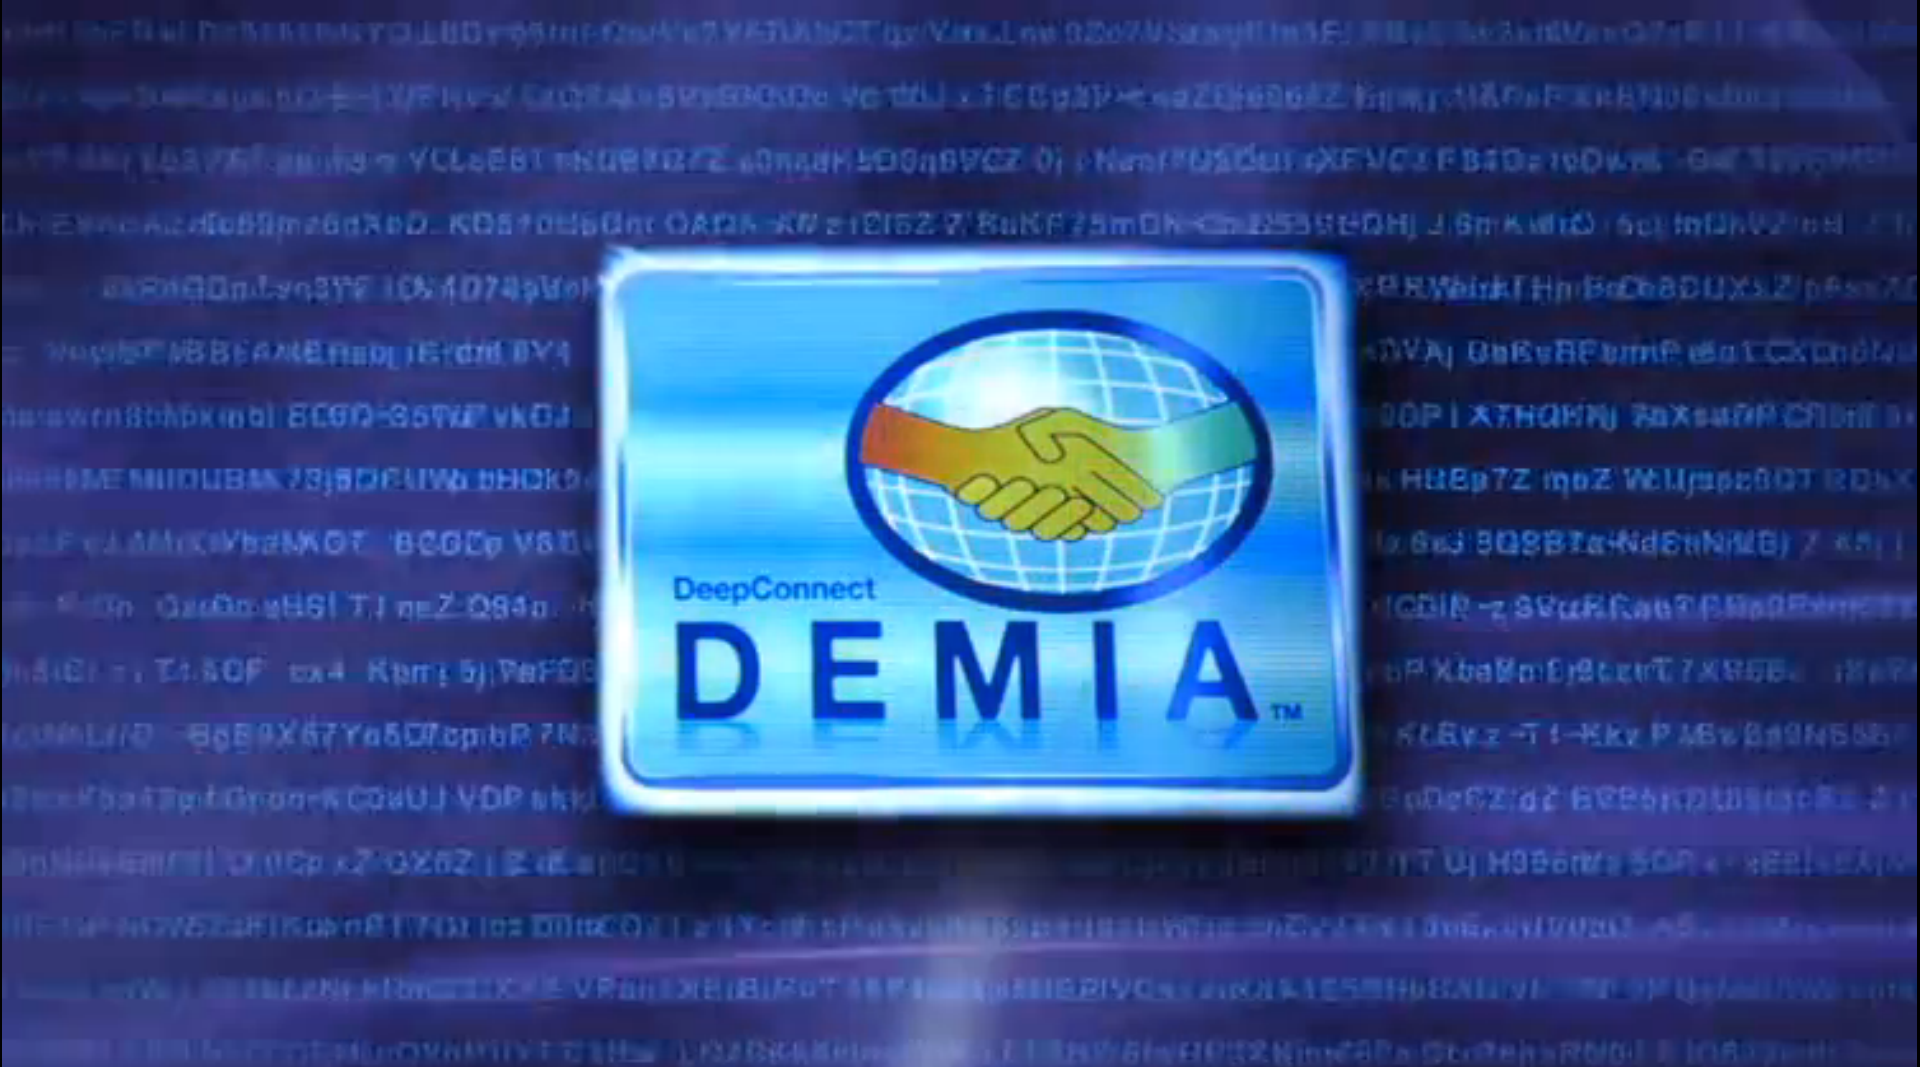 Demia Project